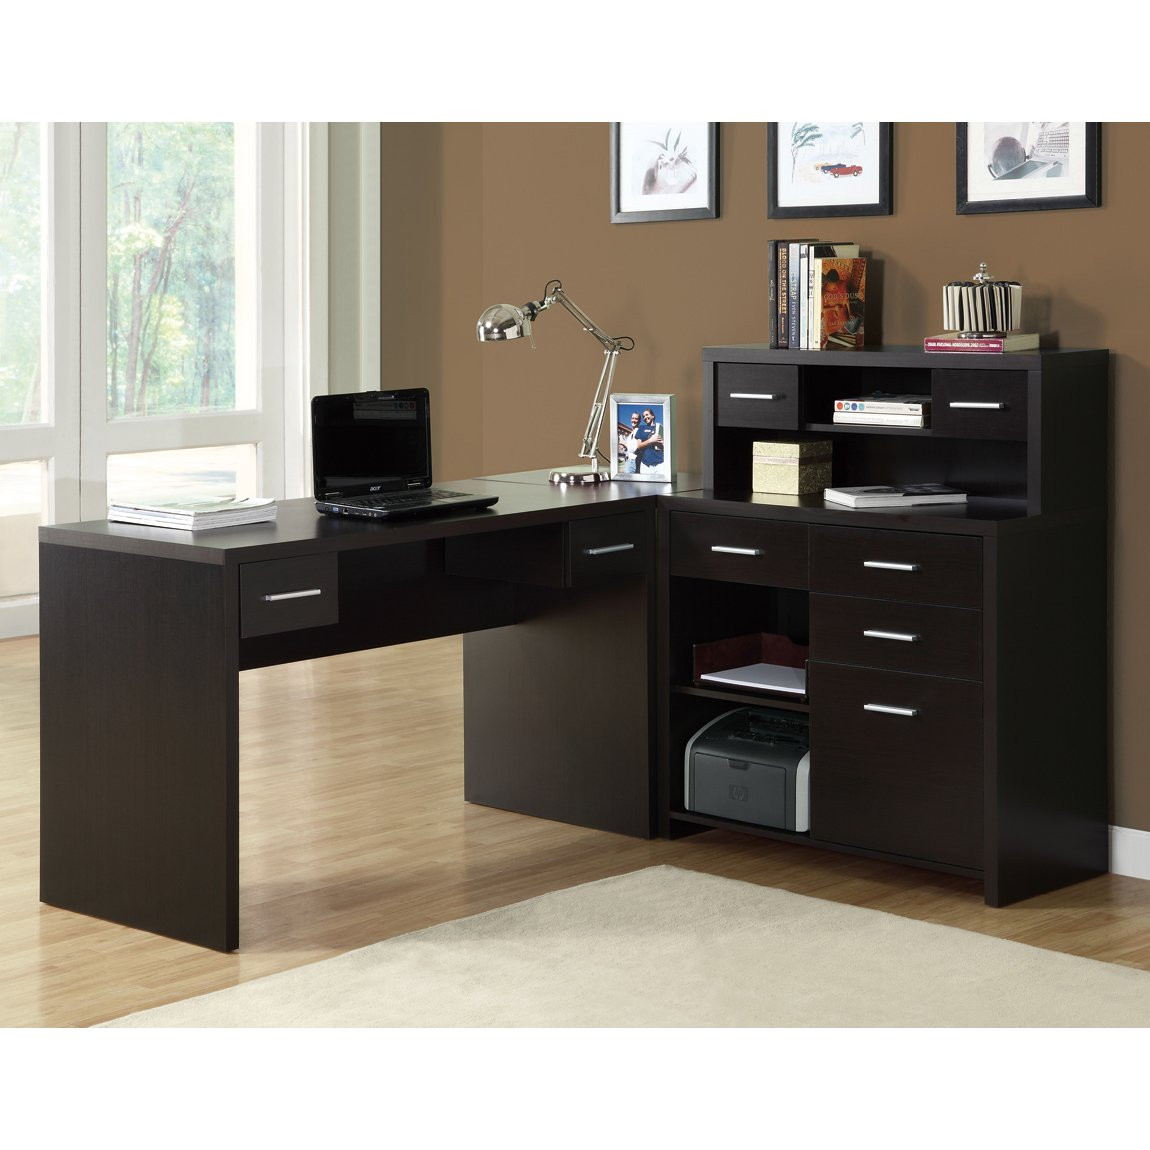 Best ideas about Office Desks For Home . Save or Pin Monarch Specialties I 7 L Shaped Home fice Desk Now.